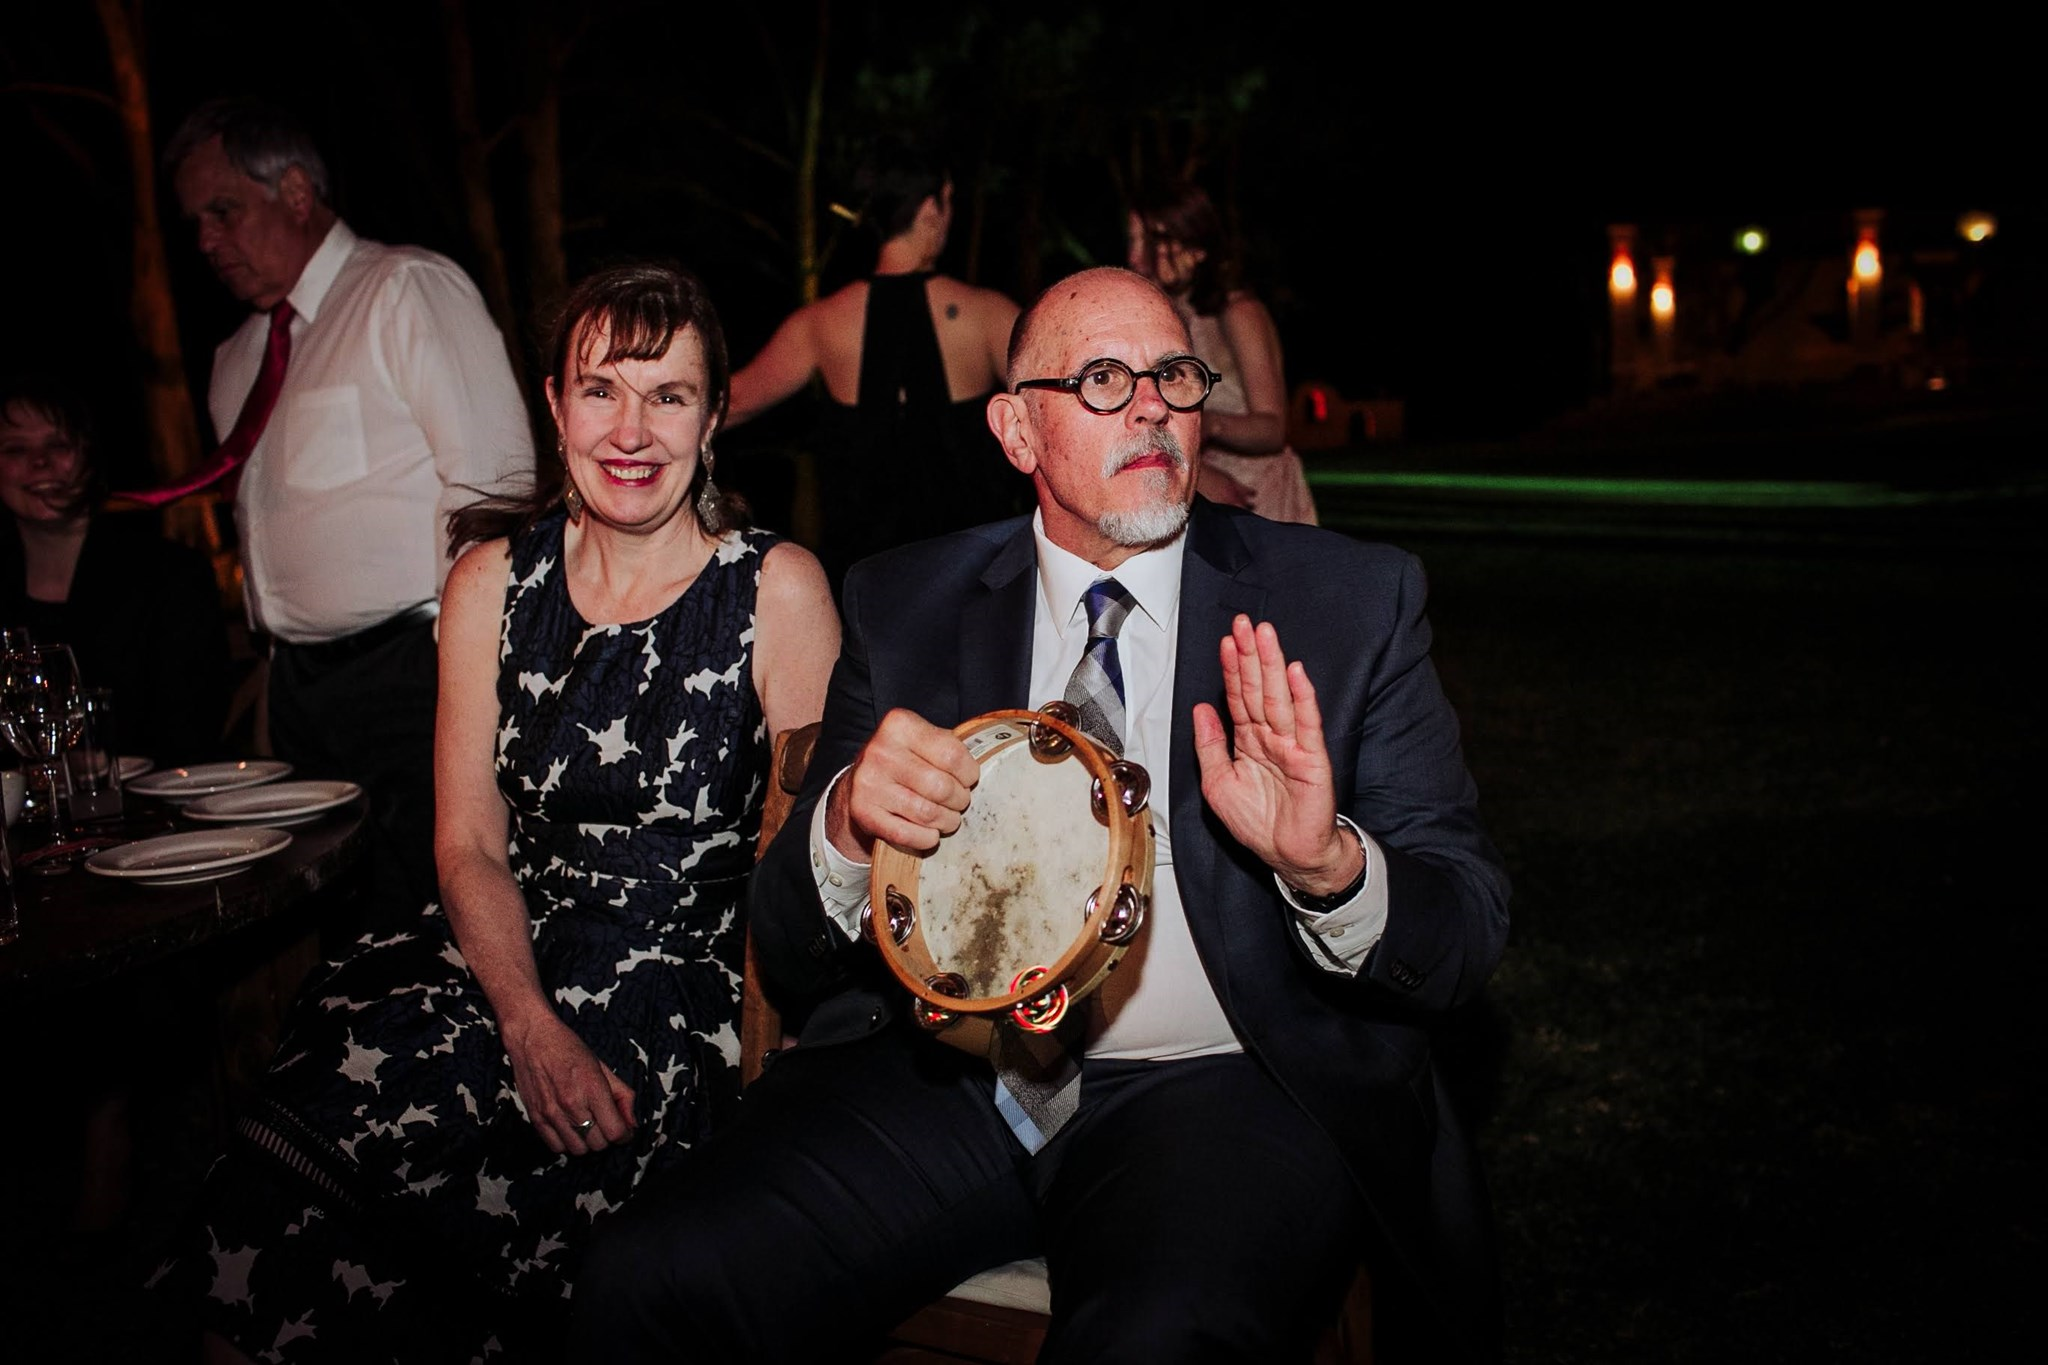 Marjorie and John at Spence and Ximena's wedding